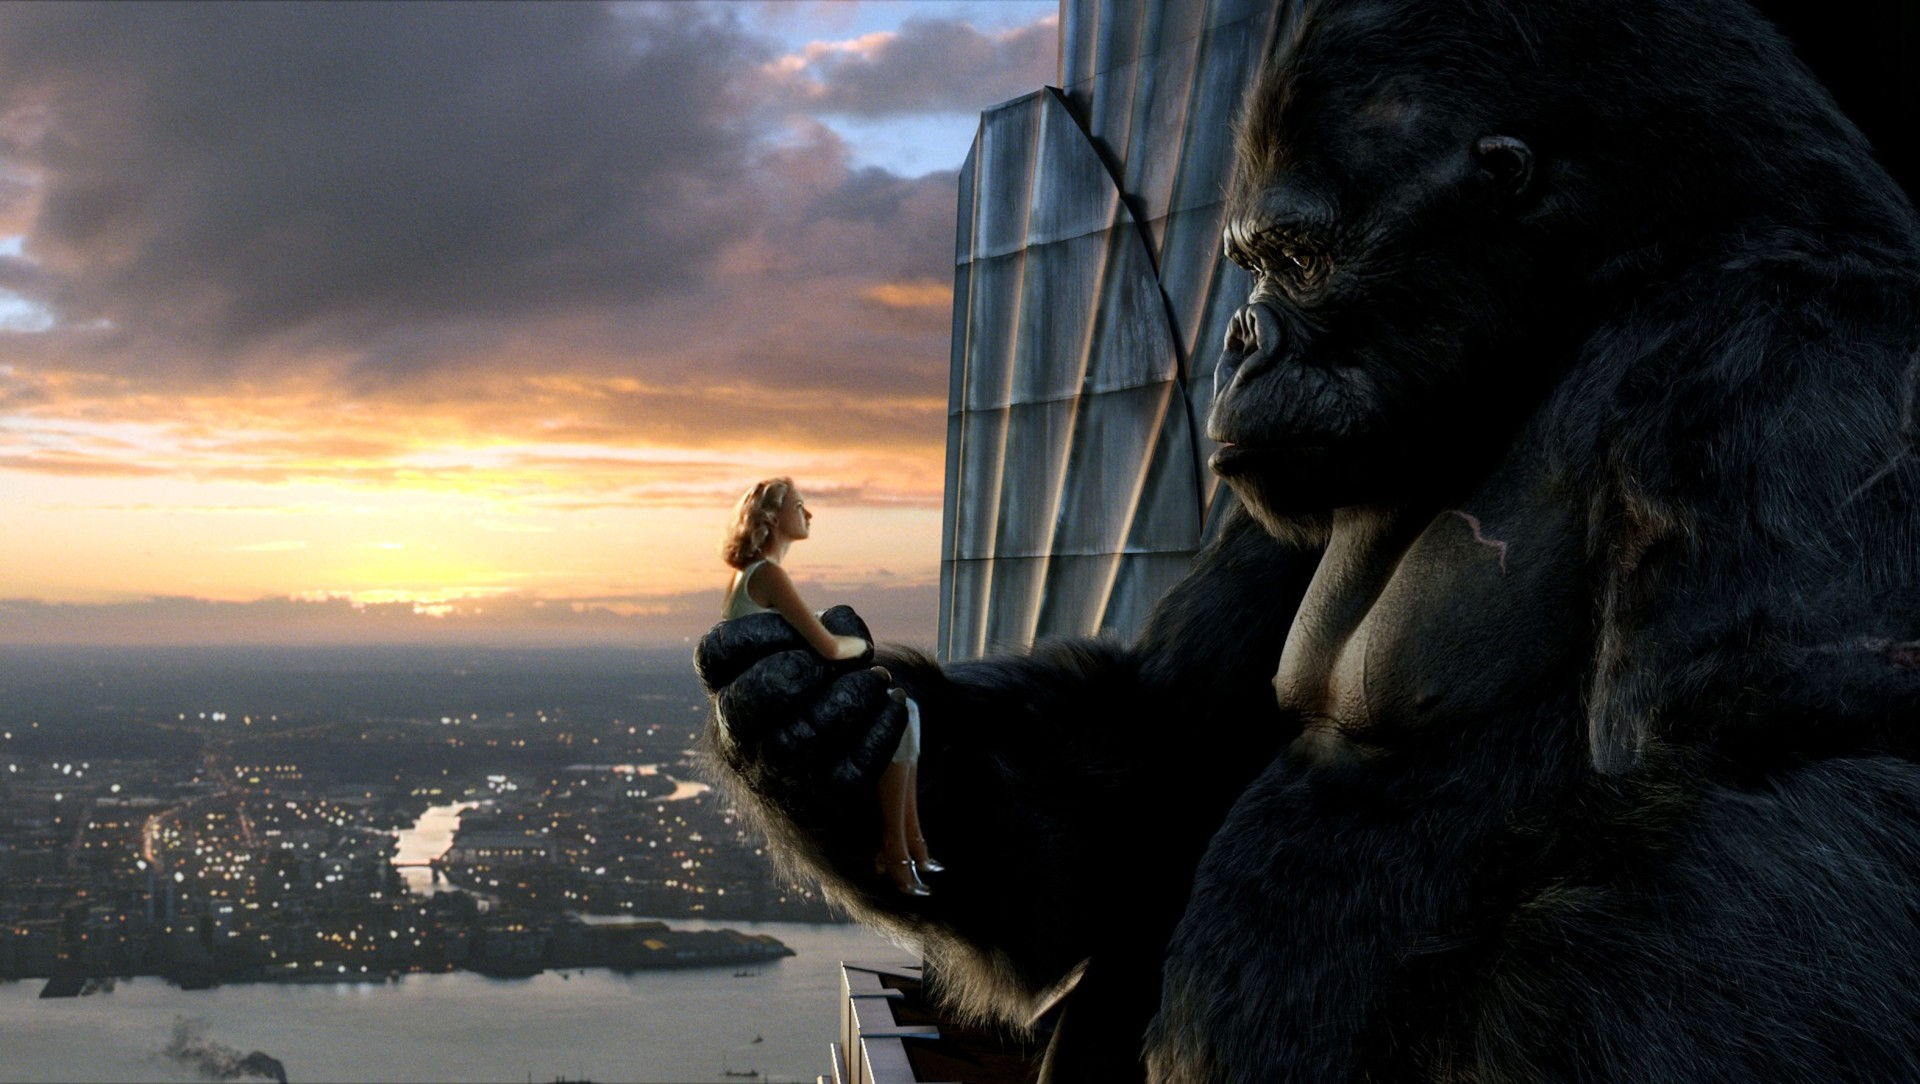 FILM MUSIC: King Kong (2005) - James Newton Howard